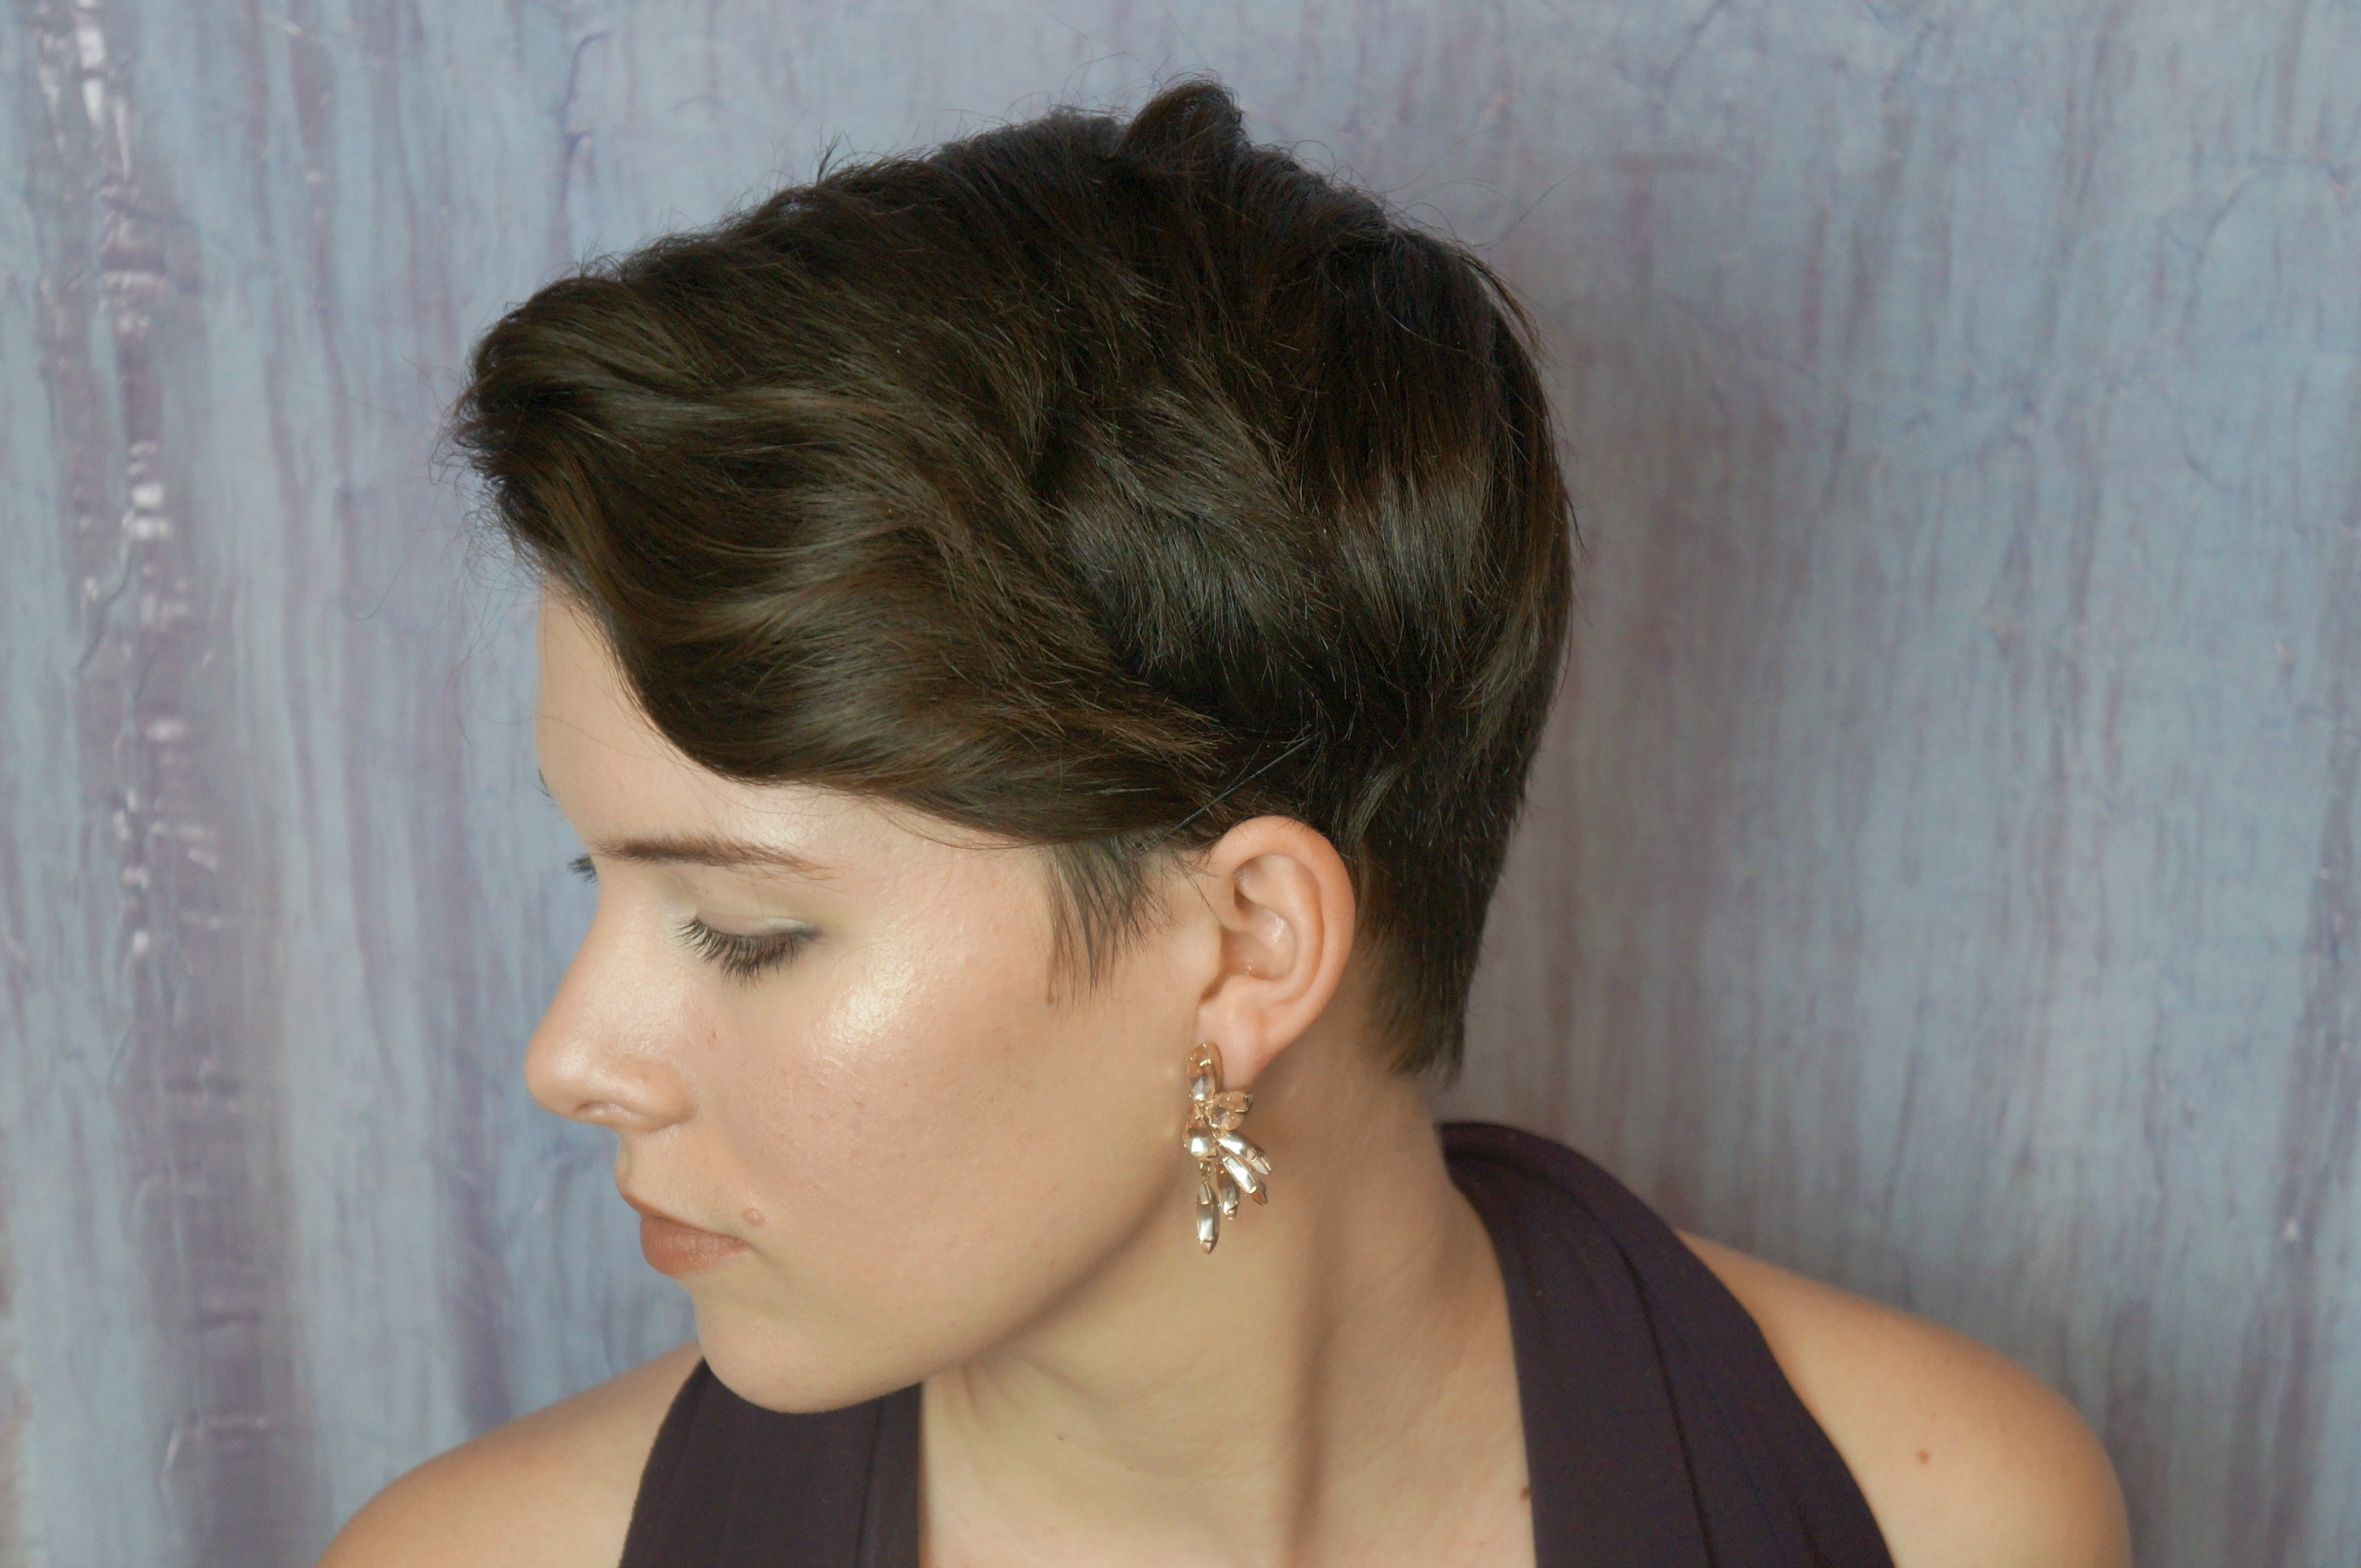 4 short hairstyles for prom that prove pixie cuts can be